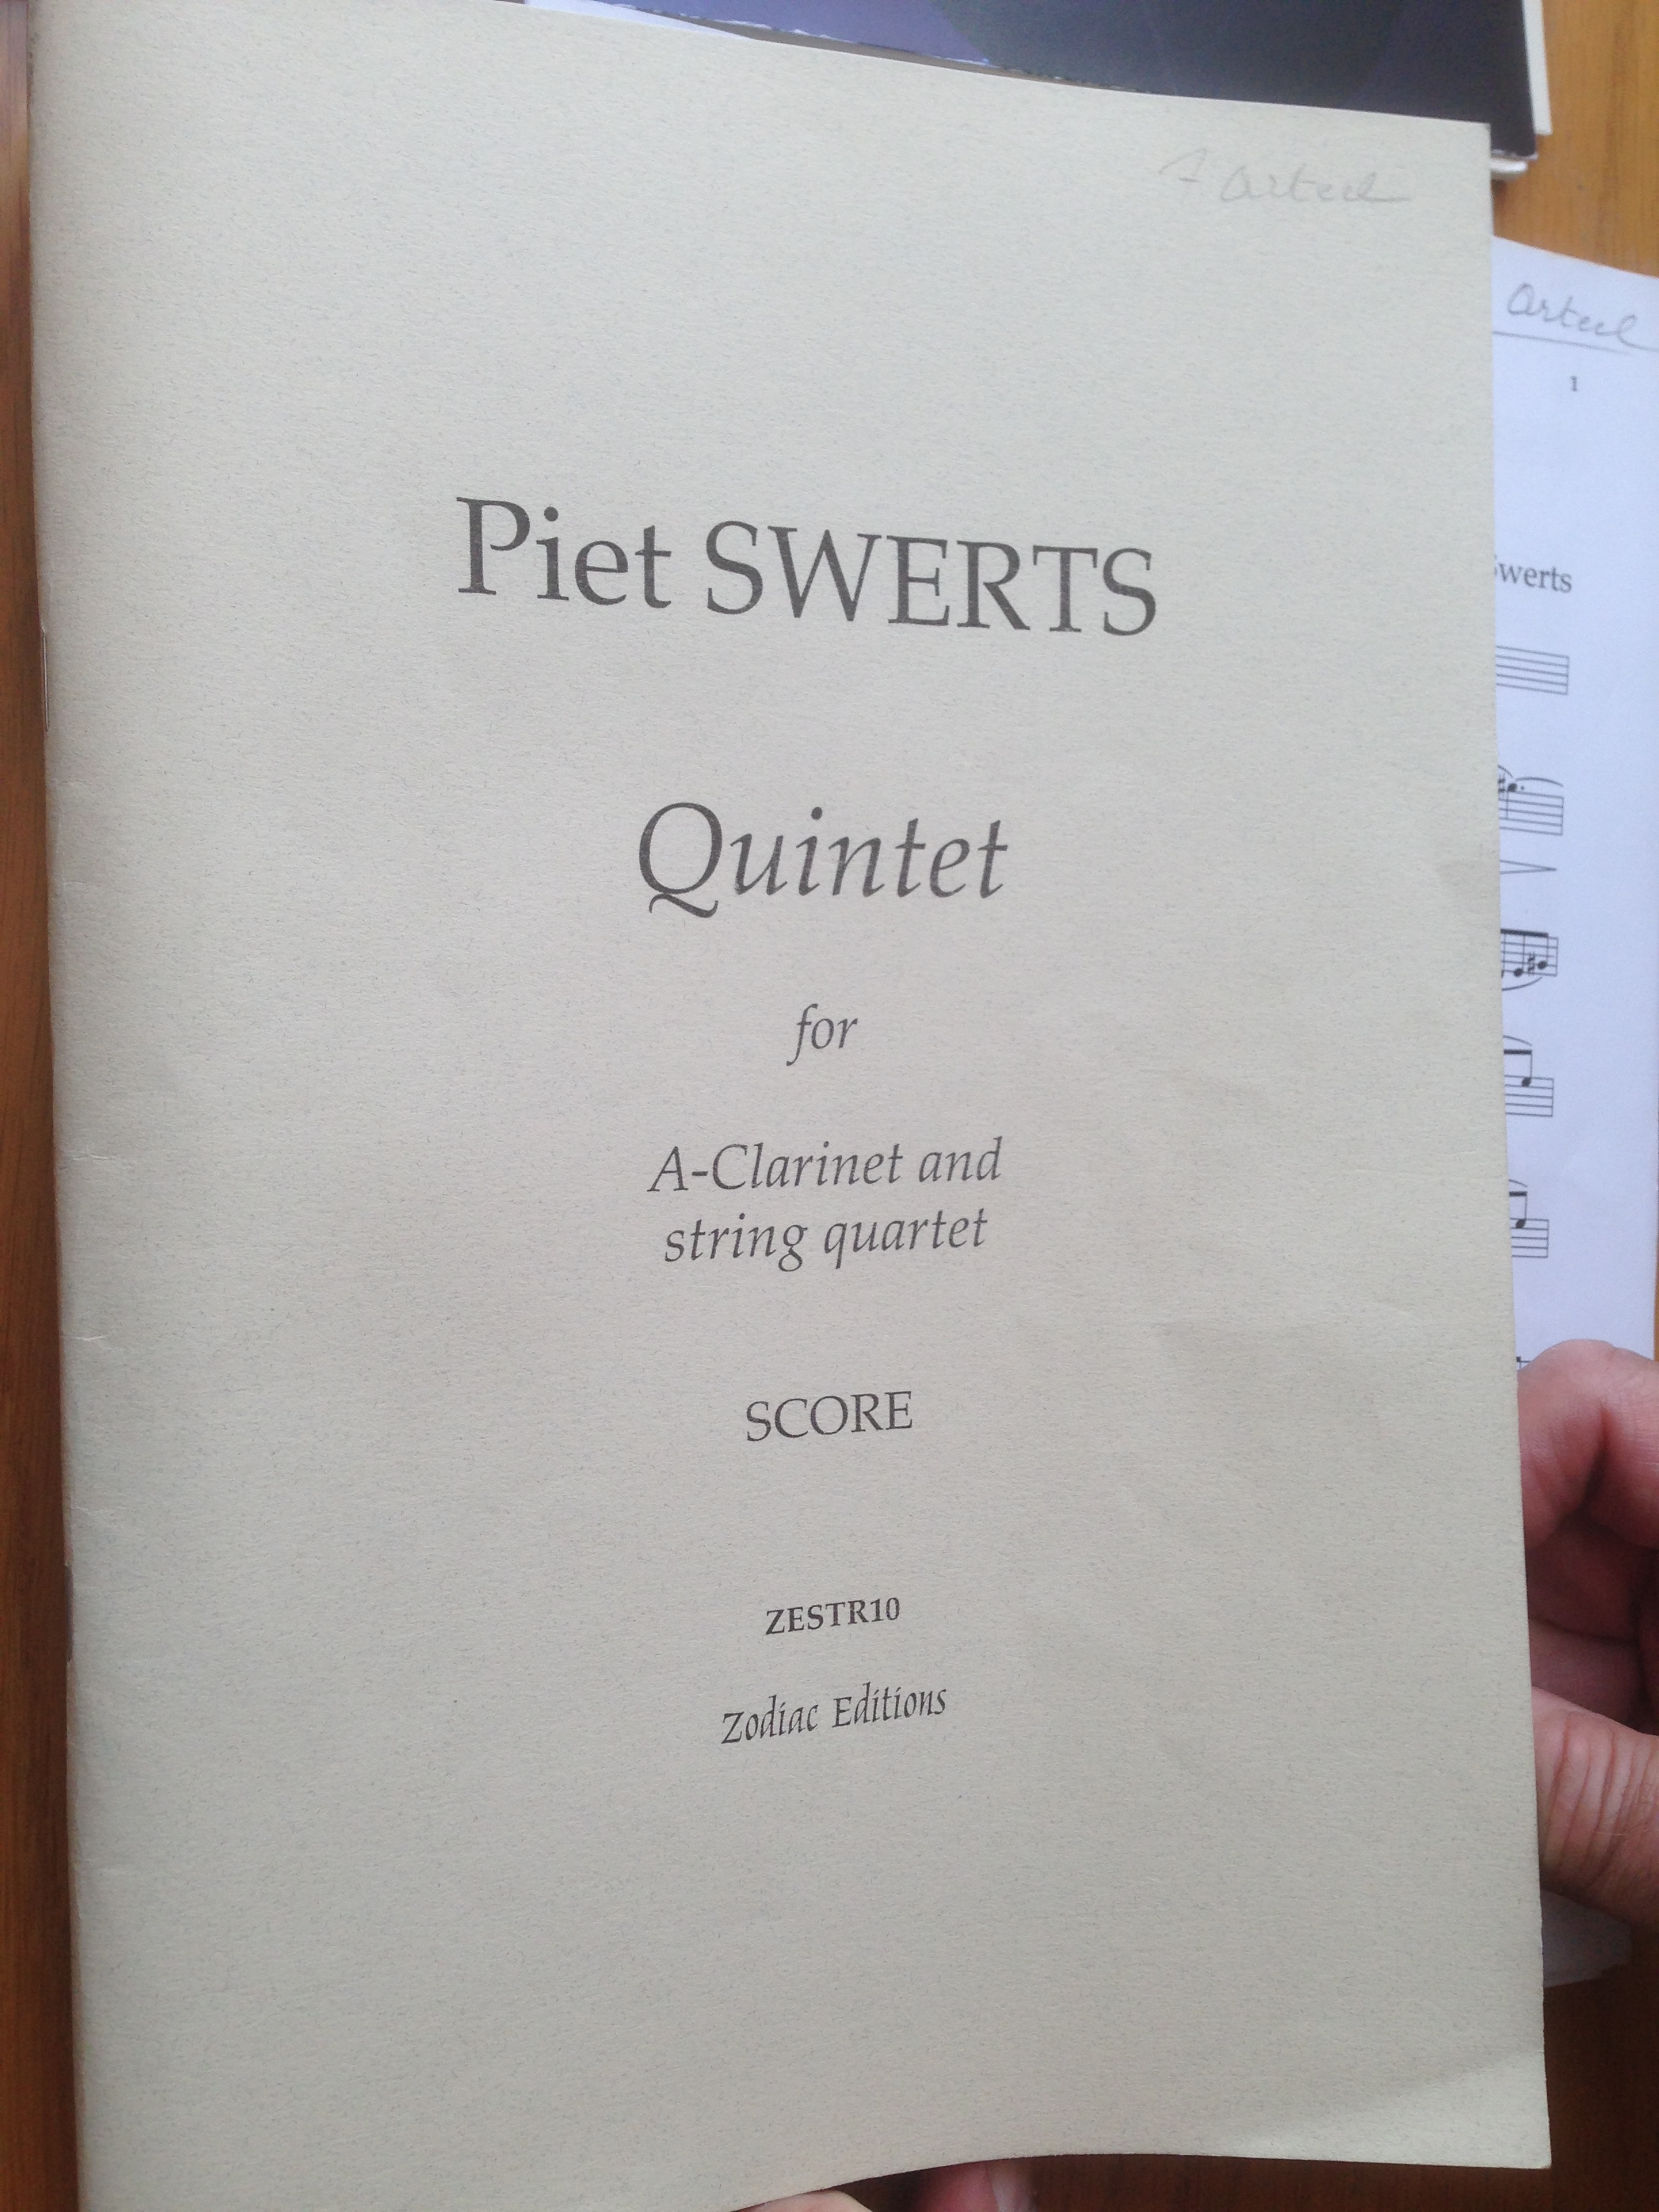 Each year, I discover several hiddengems in our repertoire. This year, my dear friend and mentor Freddy Arteel, brought this marvelous work by the Flemish composer Piet Swerts.